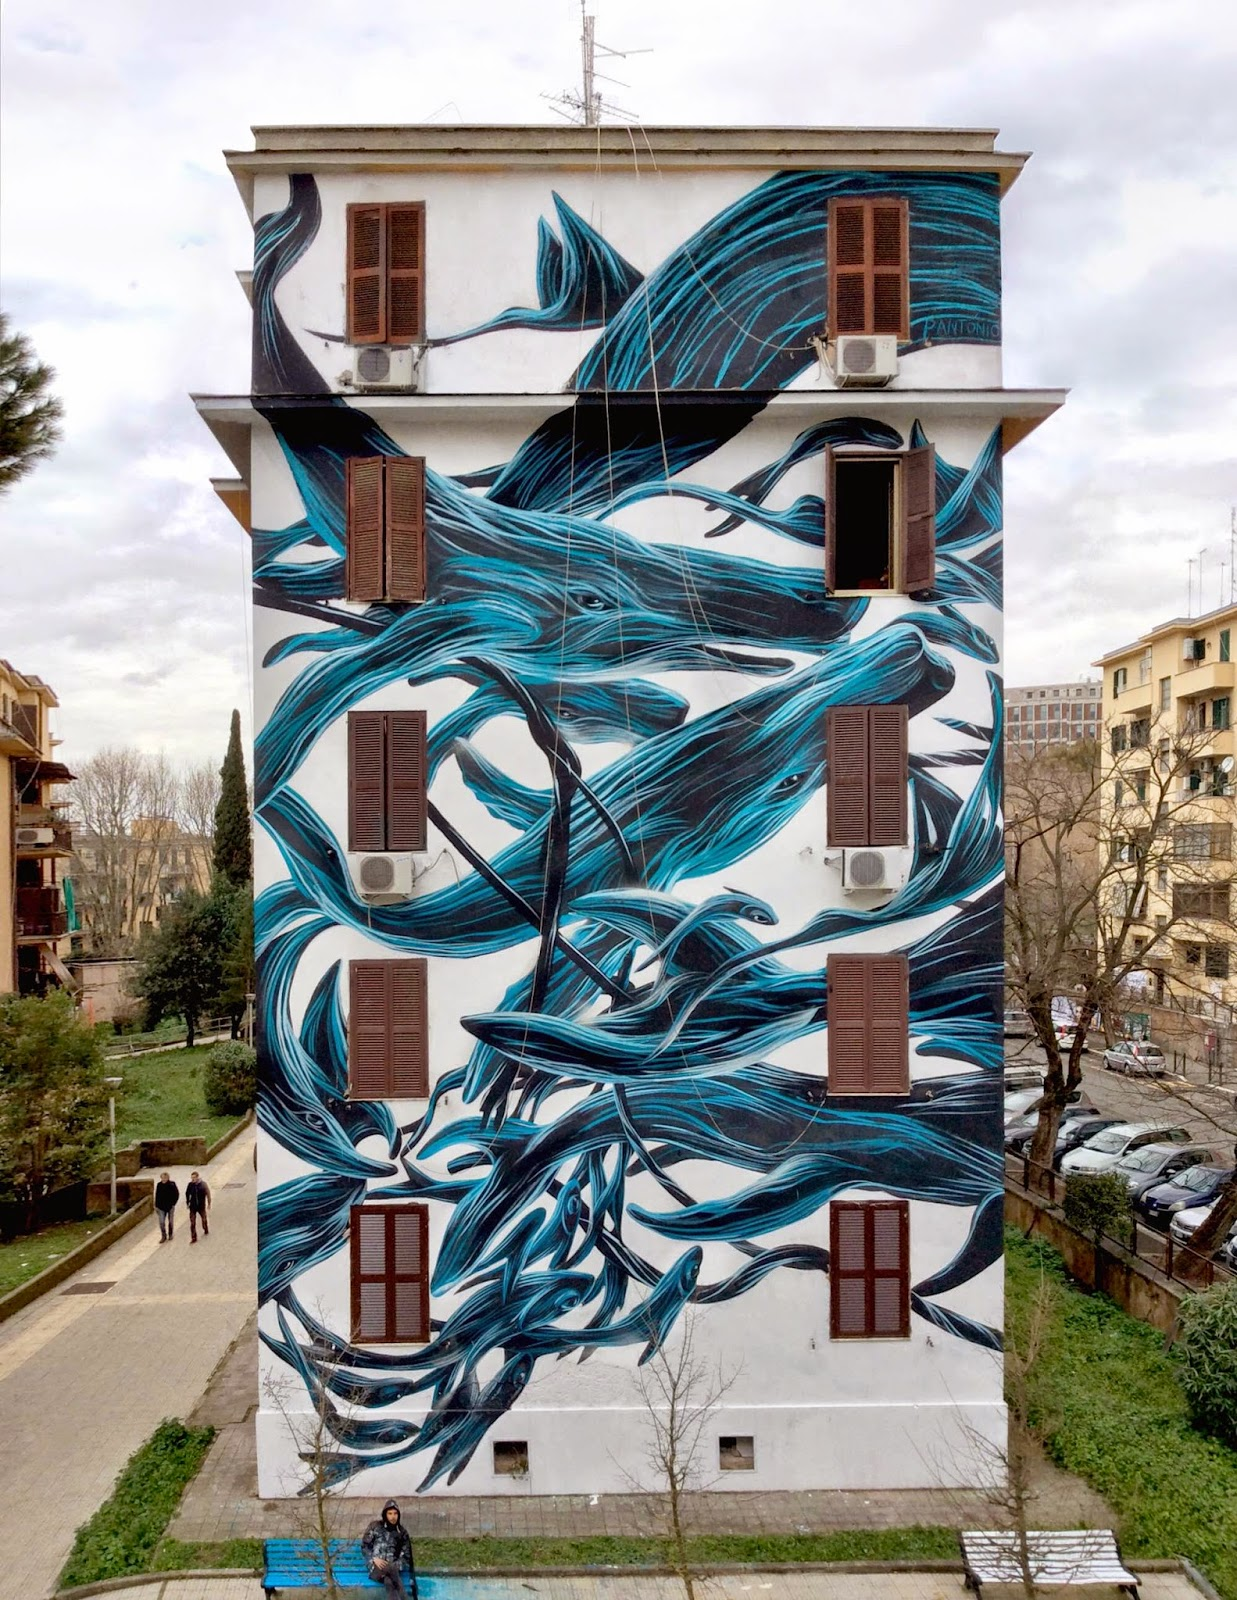 Portuguese artist Pantonio is currently in Italy where he just finished working on a massive new mural somewhere on the streets of Rome.